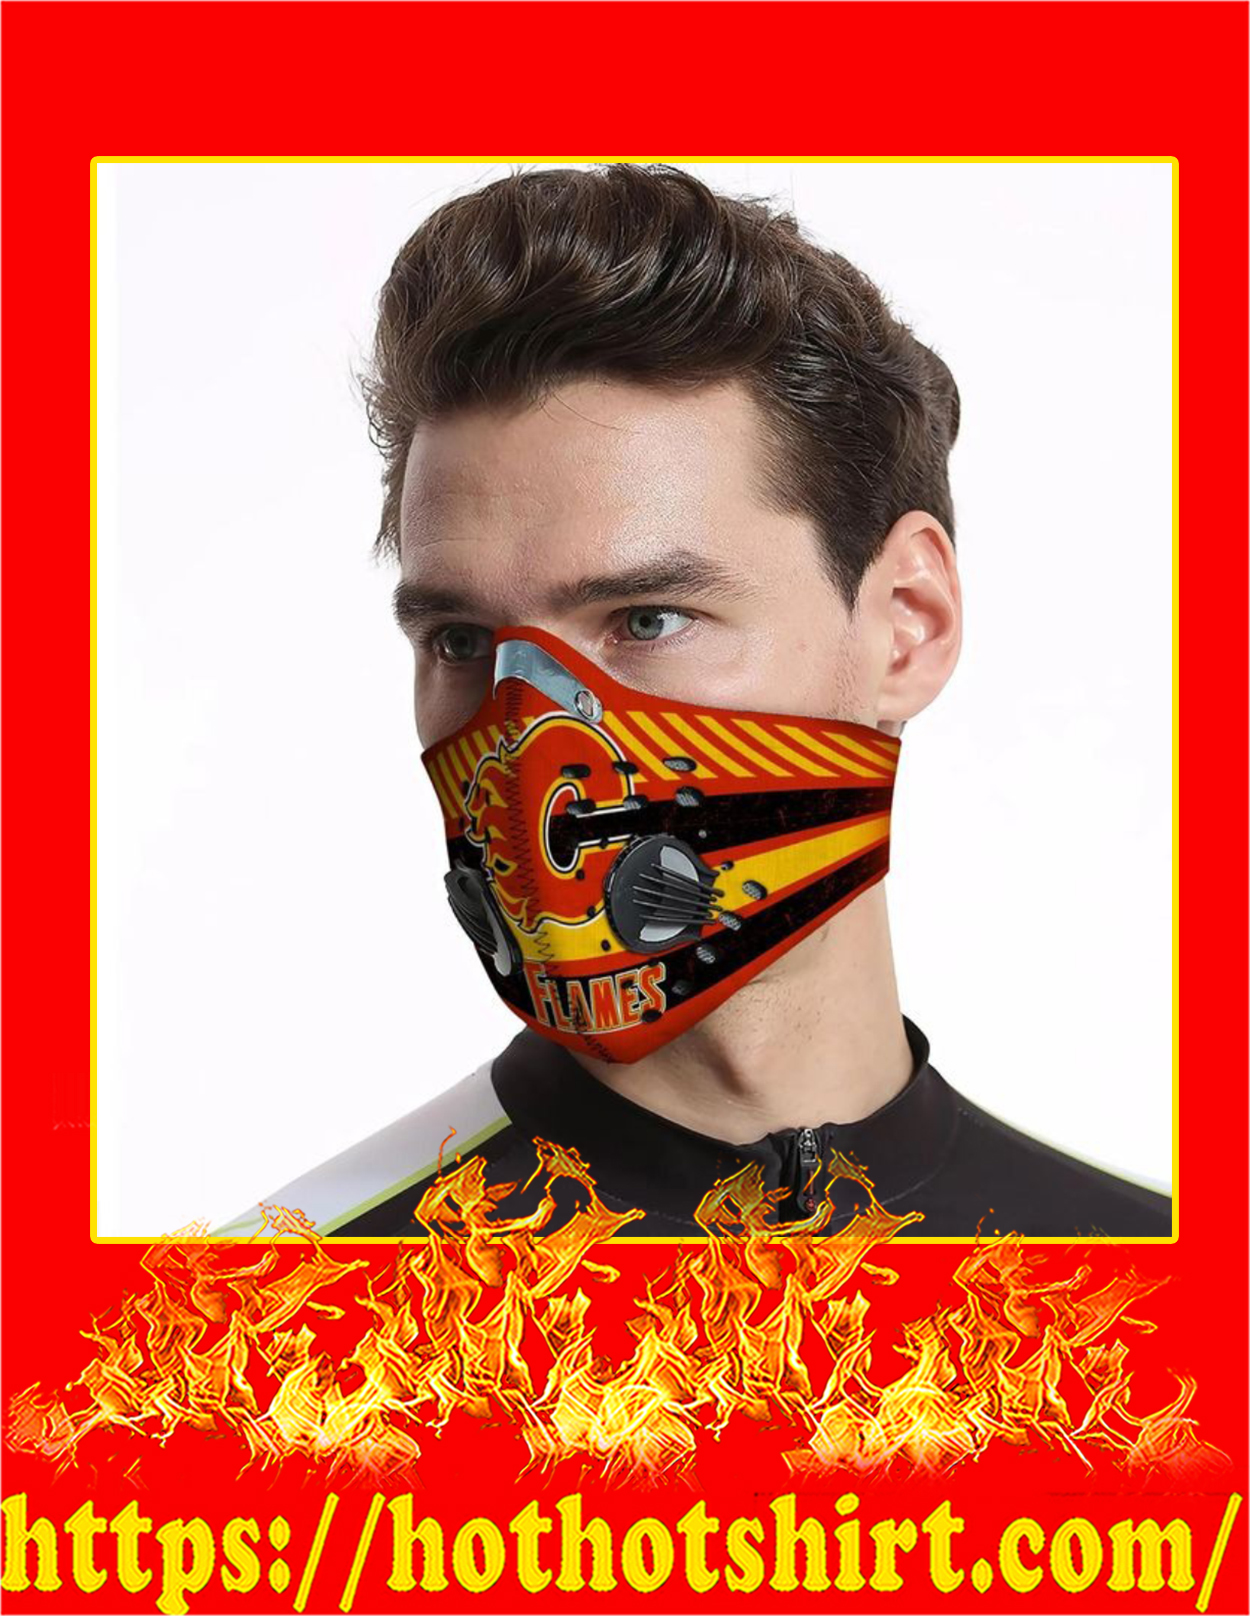 Calgary flames filter face mask - Pic 3